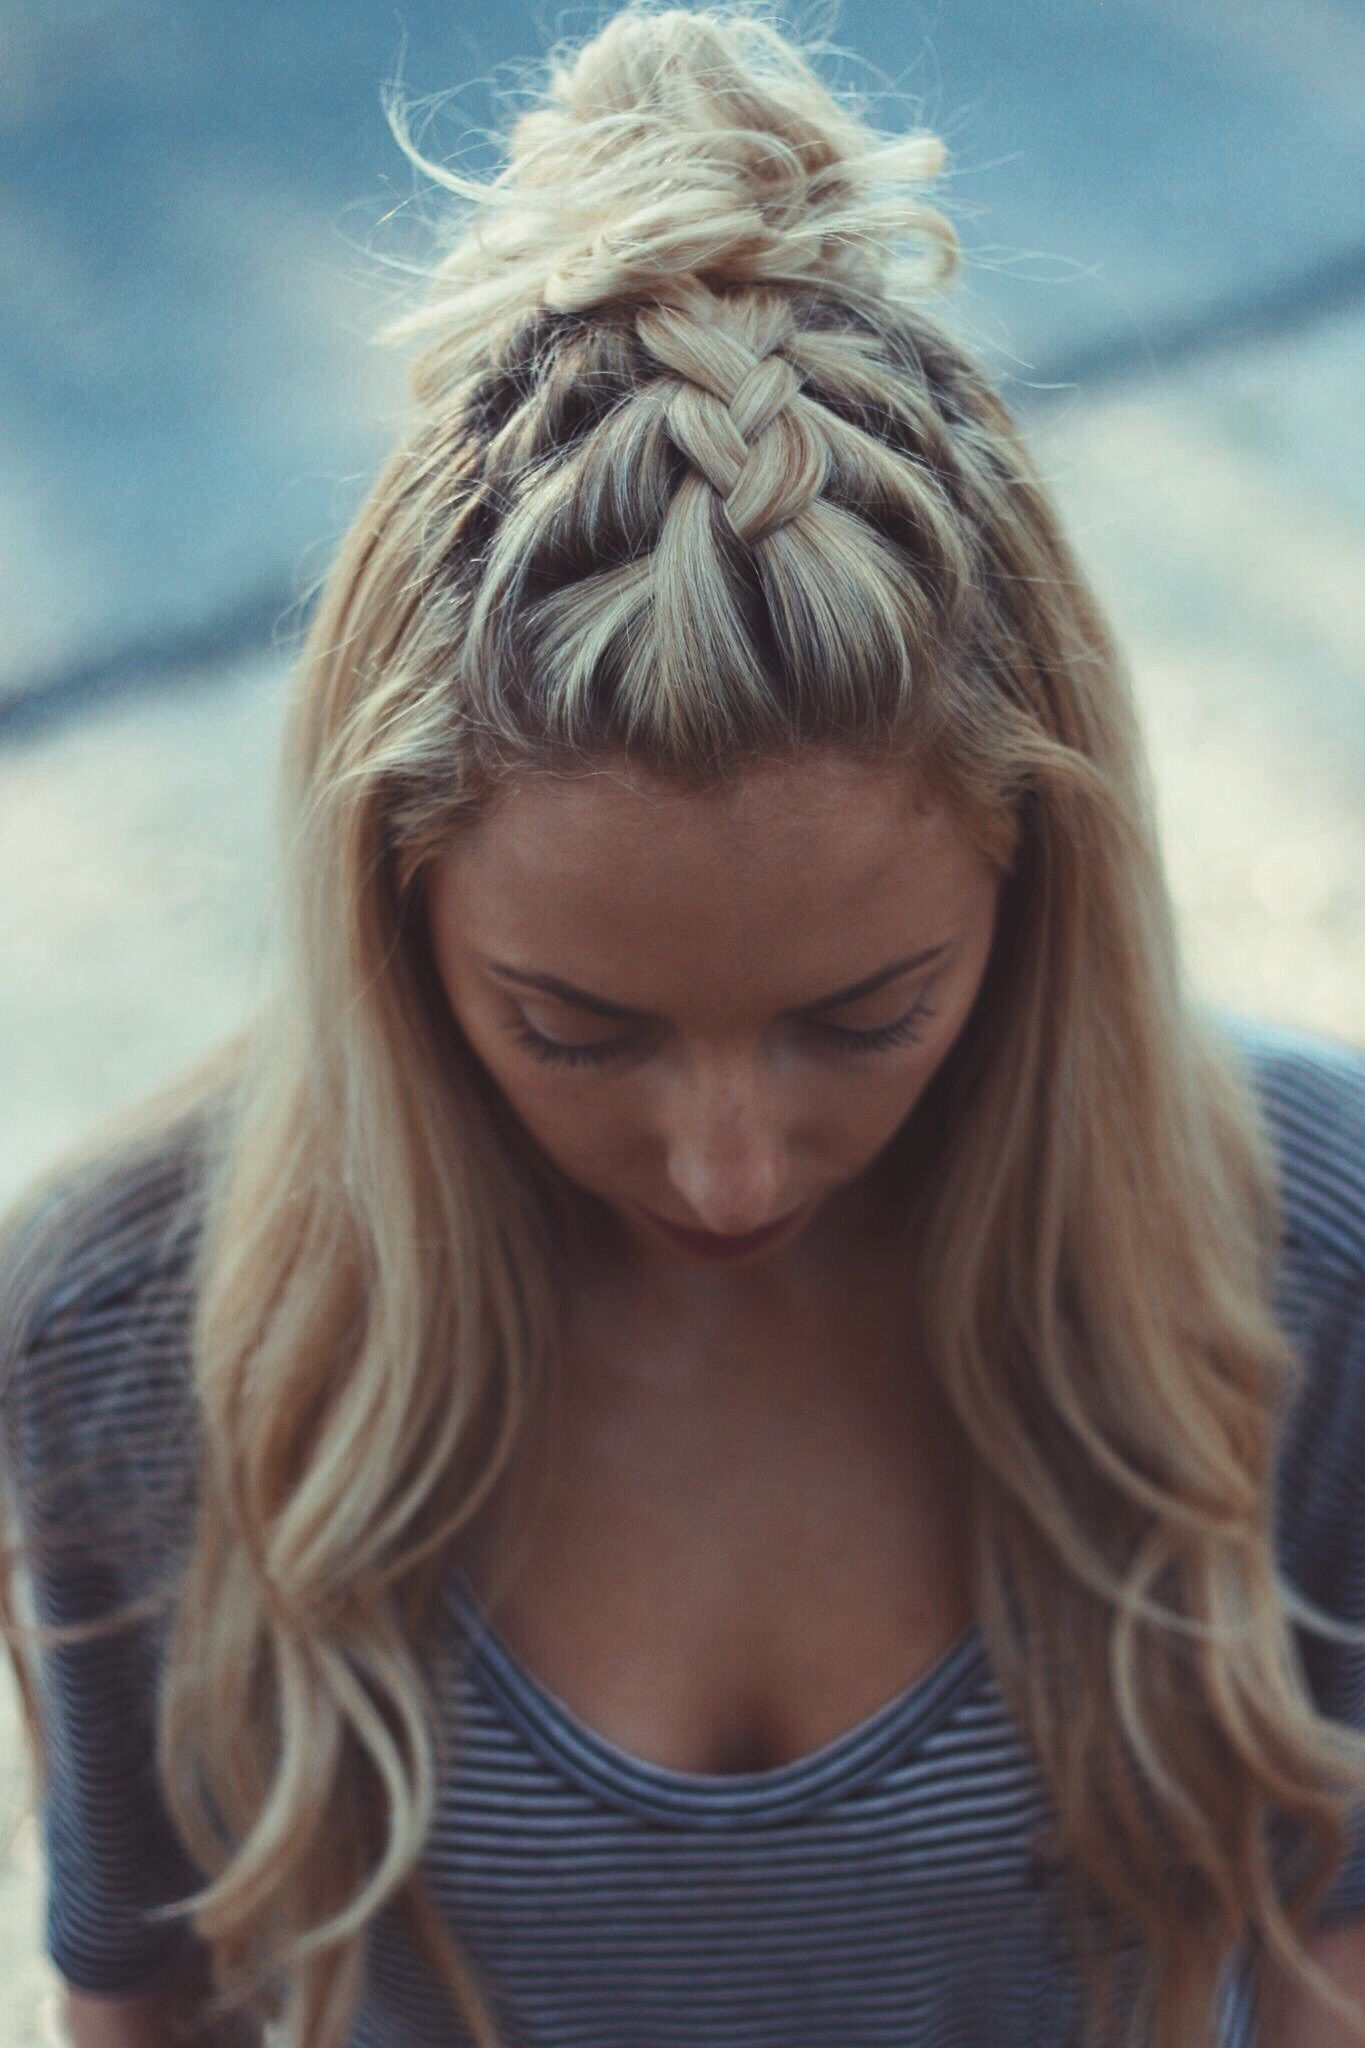 Braided Bangs Hairstyles On The Fence Latest Fashion Blonde Braids And Braid Half Up